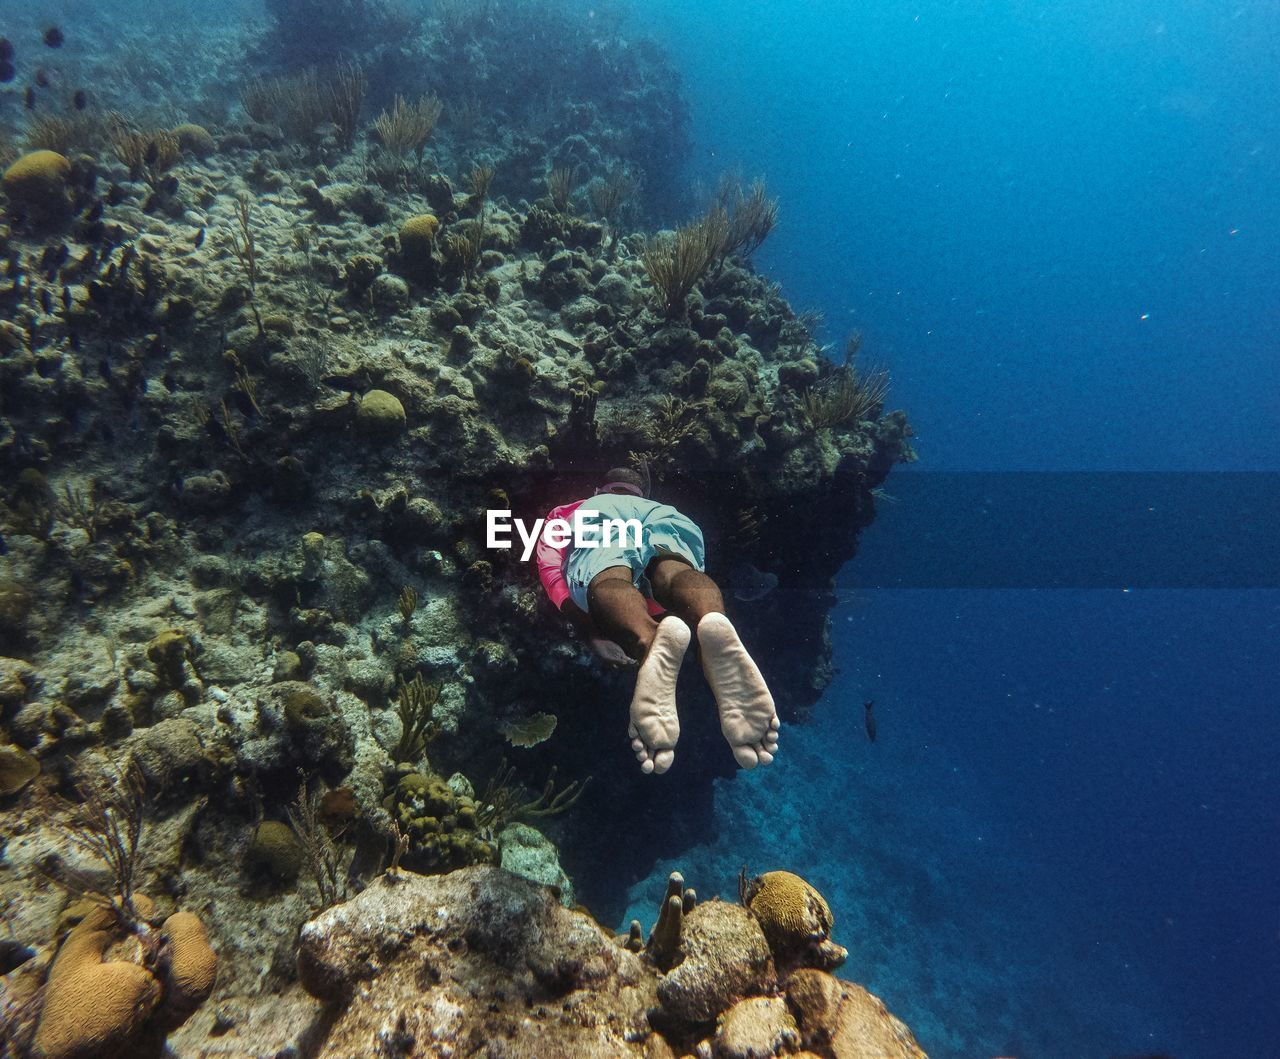 underwater, water, sea, undersea, sea life, animal wildlife, animals in the wild, swimming, animal themes, invertebrate, marine, animal, coral, nature, one person, real people, rock, solid, leisure activity, outdoors, underwater diving